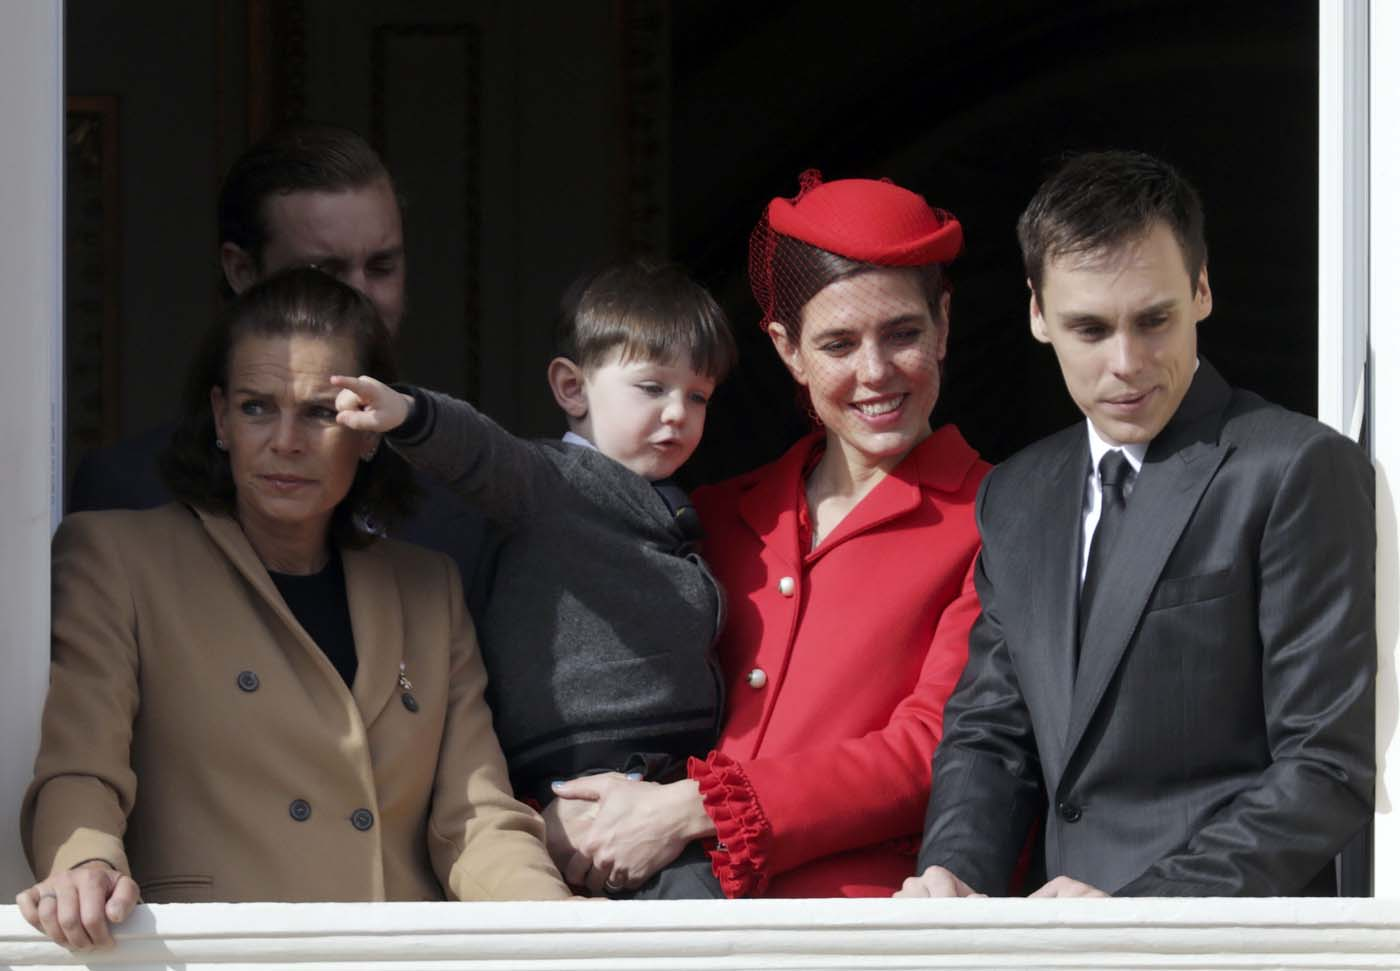 Princess Stephanie (L), her son Louis Ducruet (R), Charlotte Casiraghi (2ndR) and her son Raphael, stand at the Palace Balcony during Monaco's National Day November 19, 2016. REUTERS/Eric Gaillard